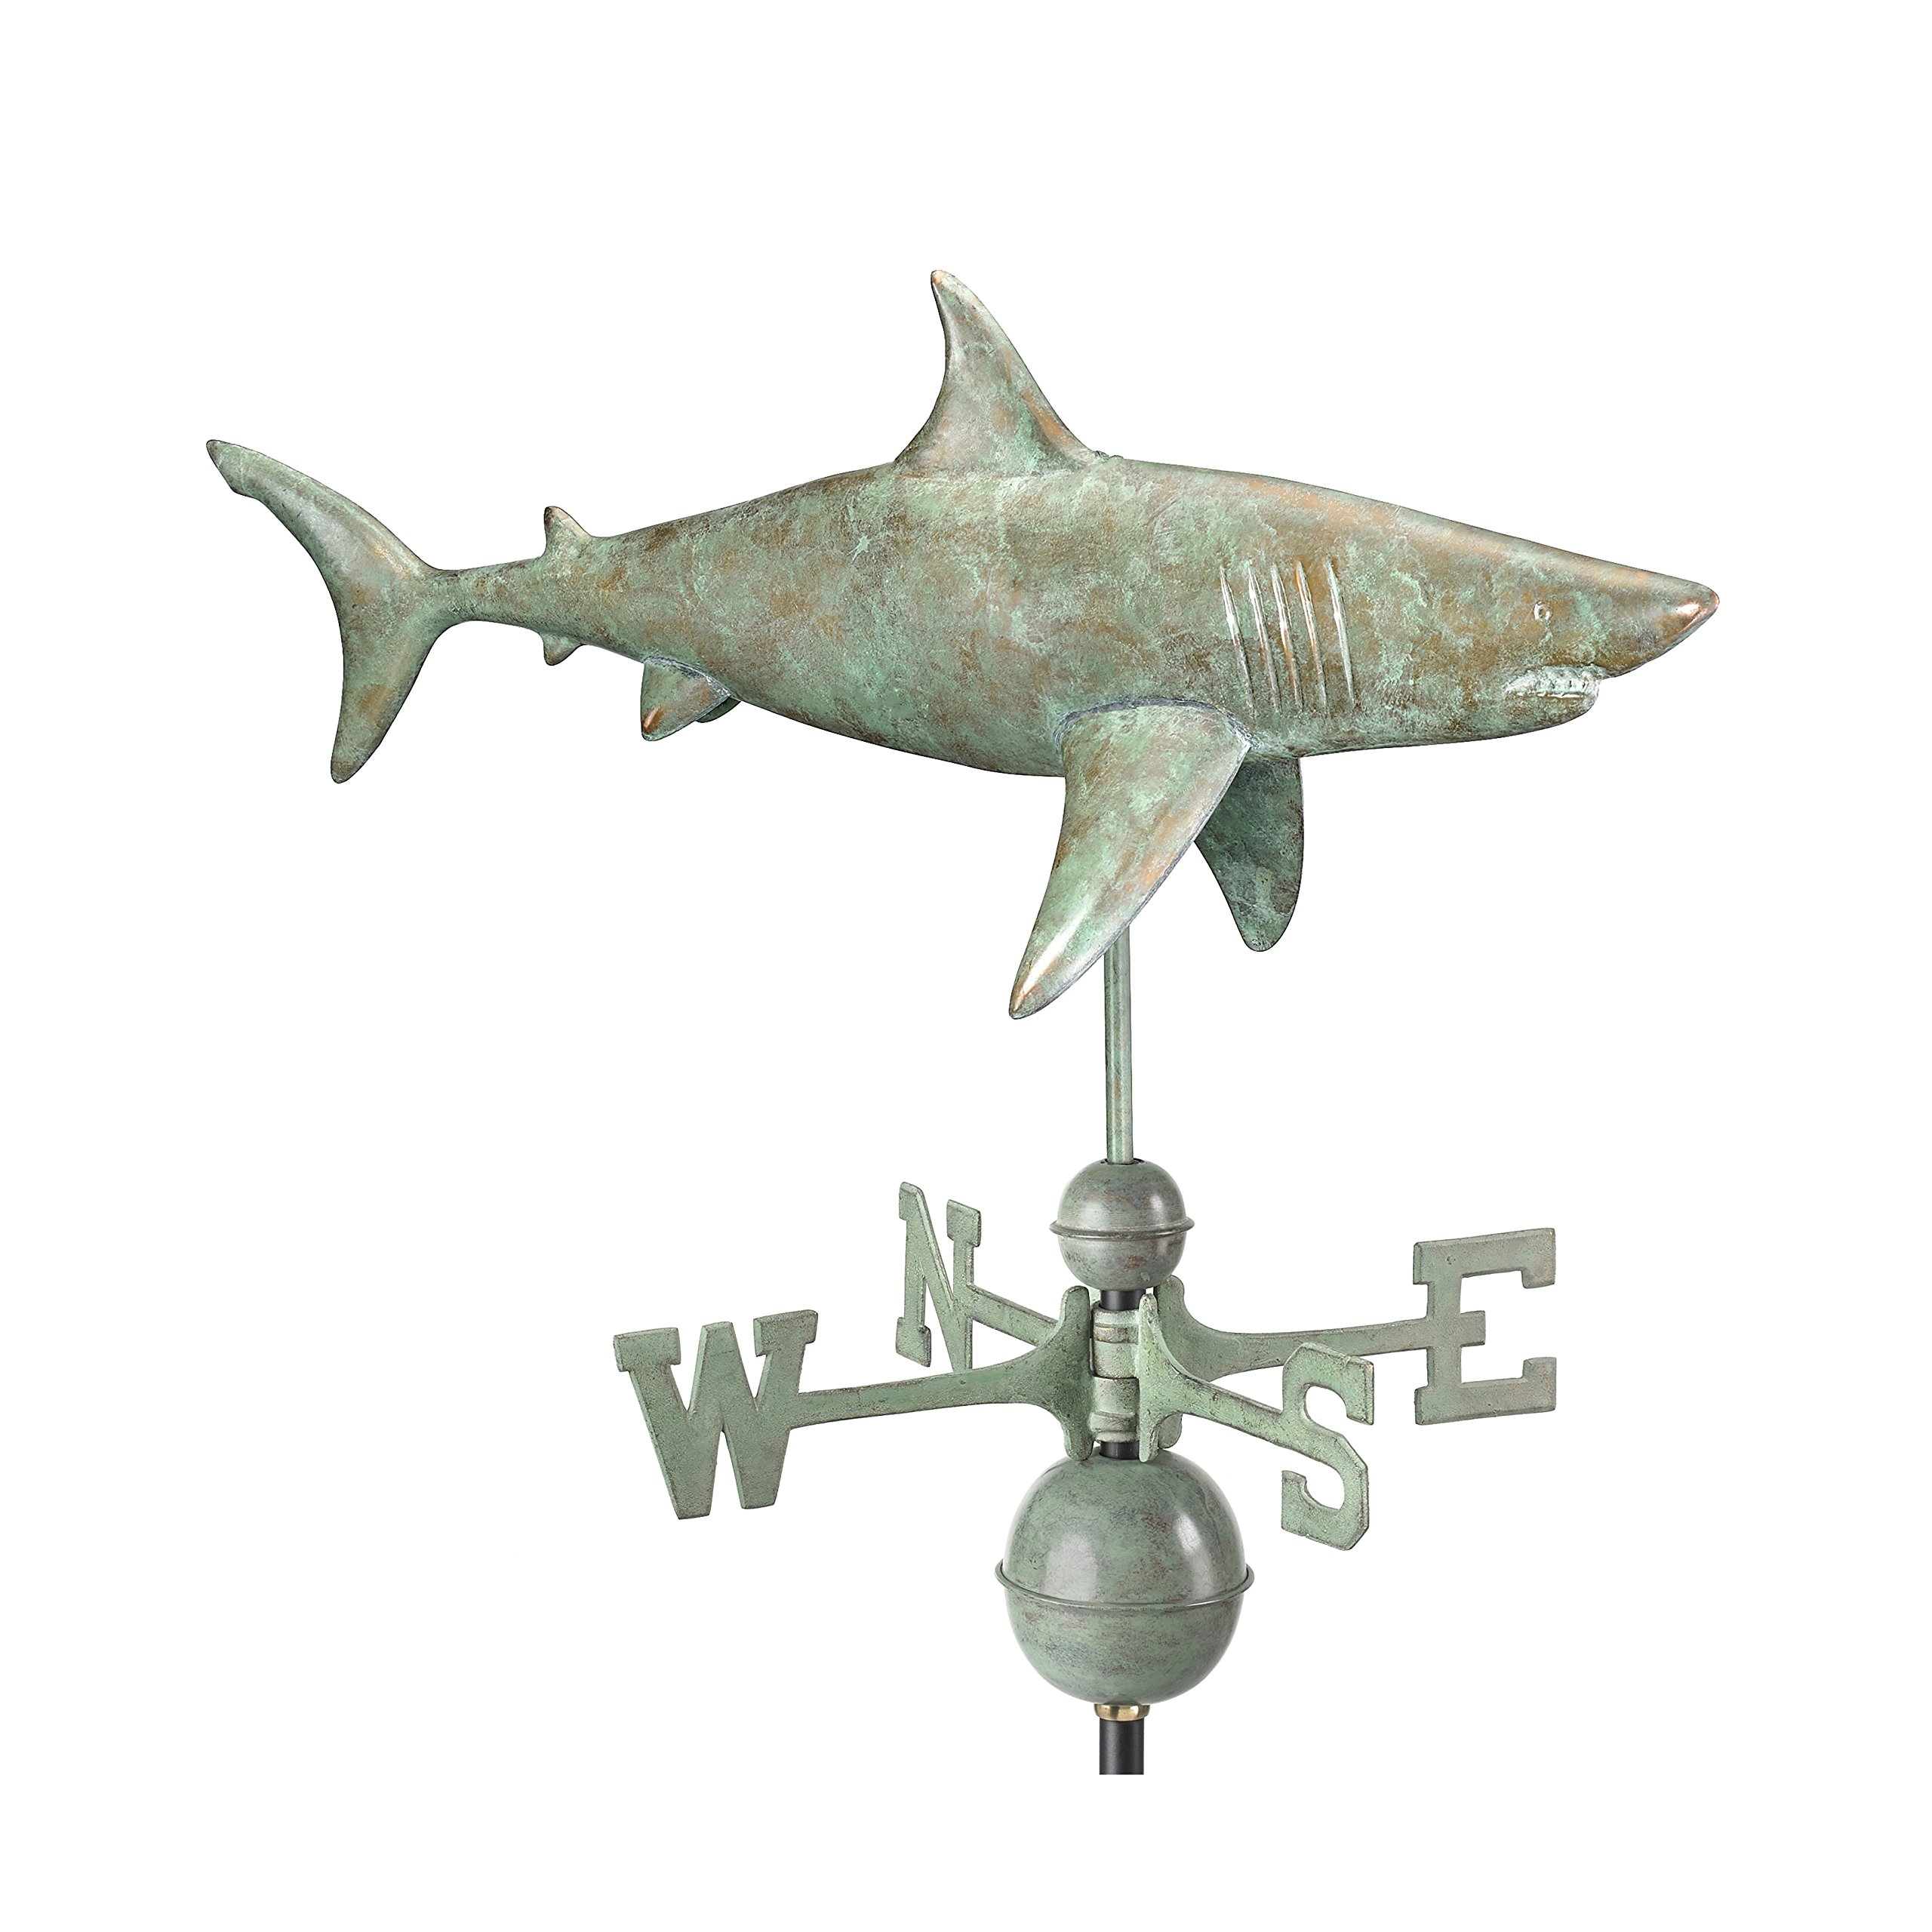 Good Directions Shark Weathervane, Blue Verde Copper, Fish, Patina by Good Directions